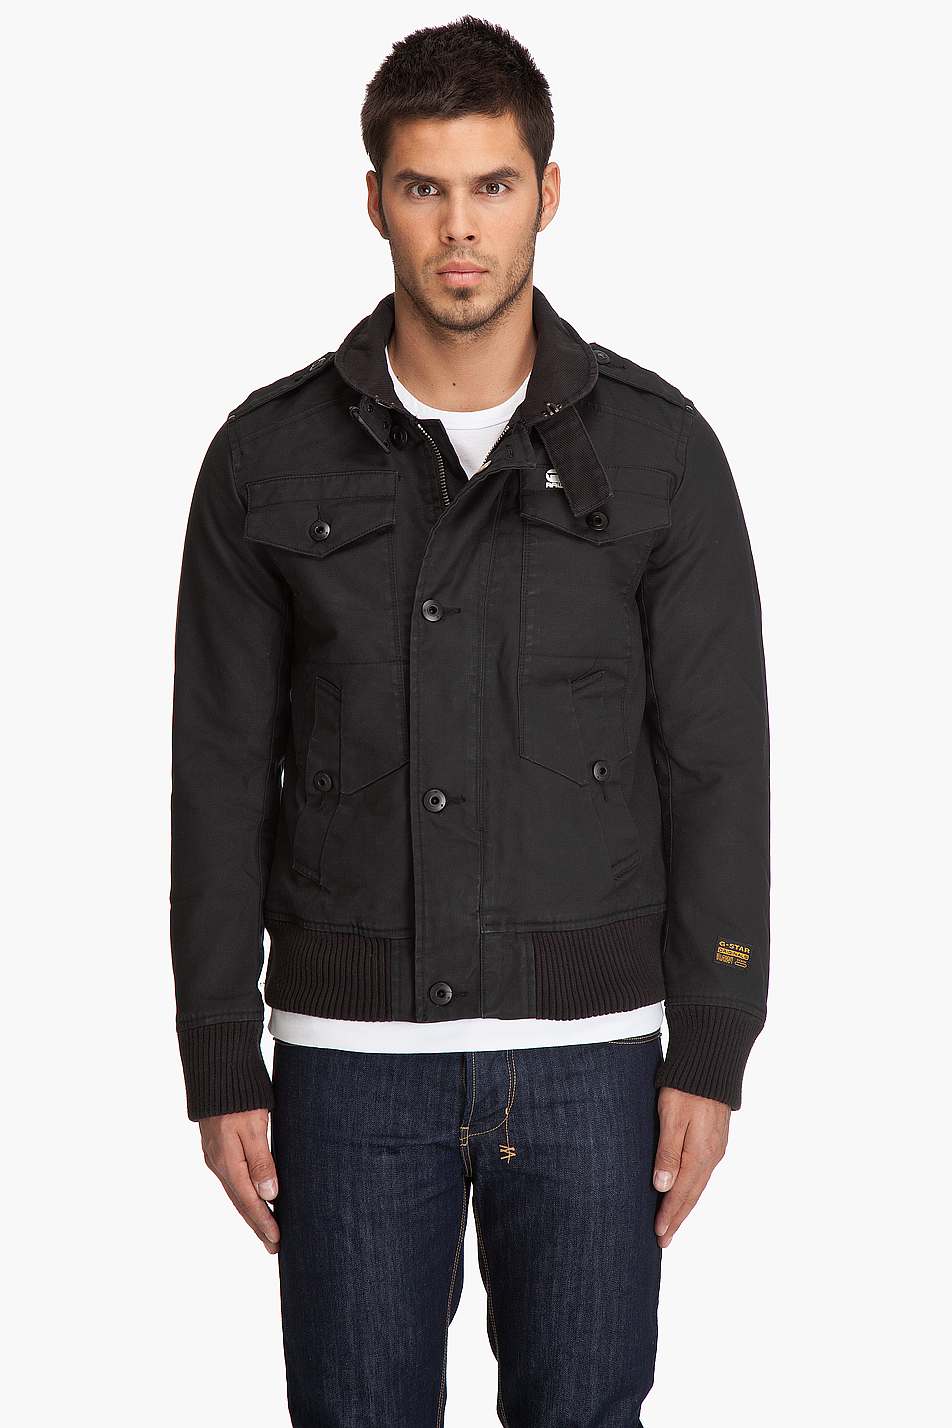 g star raw fleet bomber jacket in black for men lyst. Black Bedroom Furniture Sets. Home Design Ideas